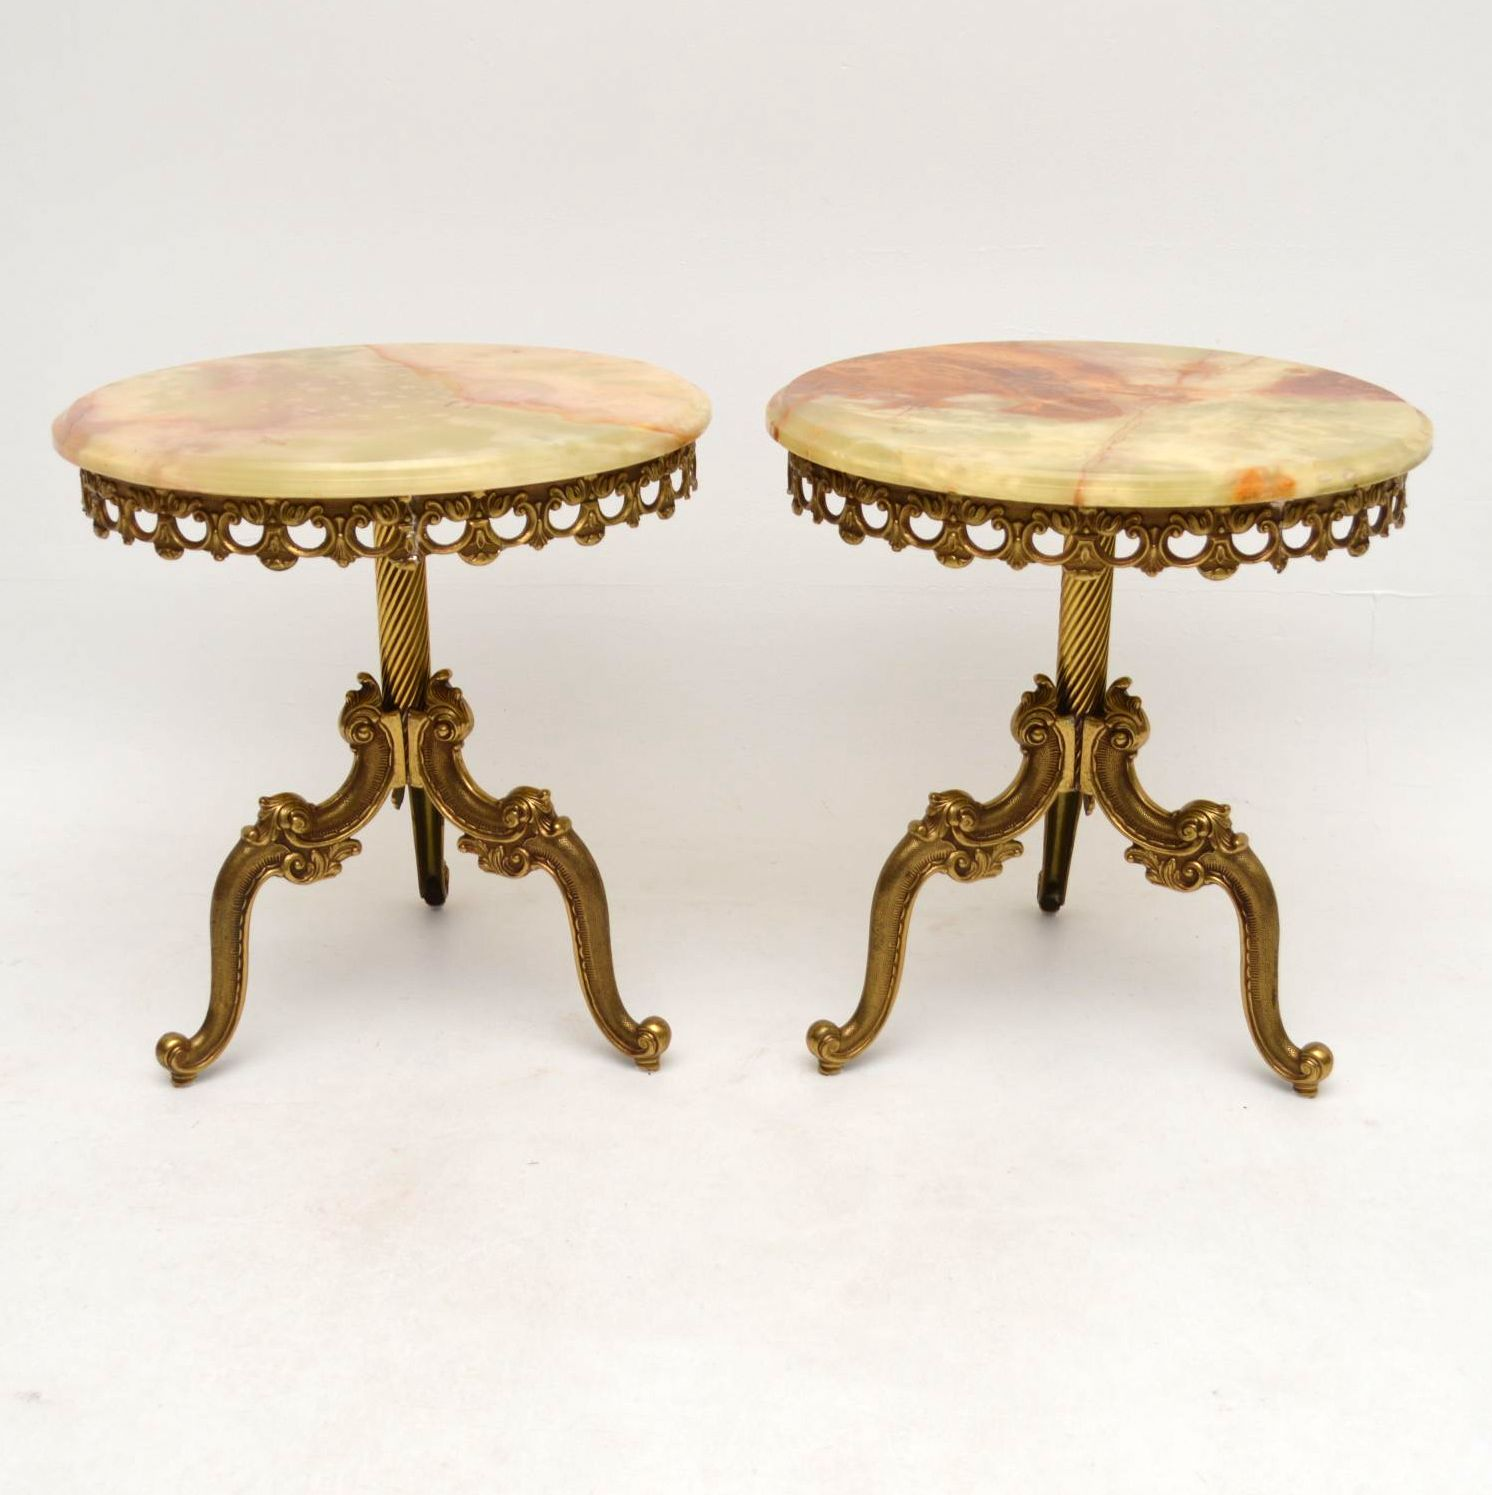 Pair of Antique French Brass & Onyx Tables